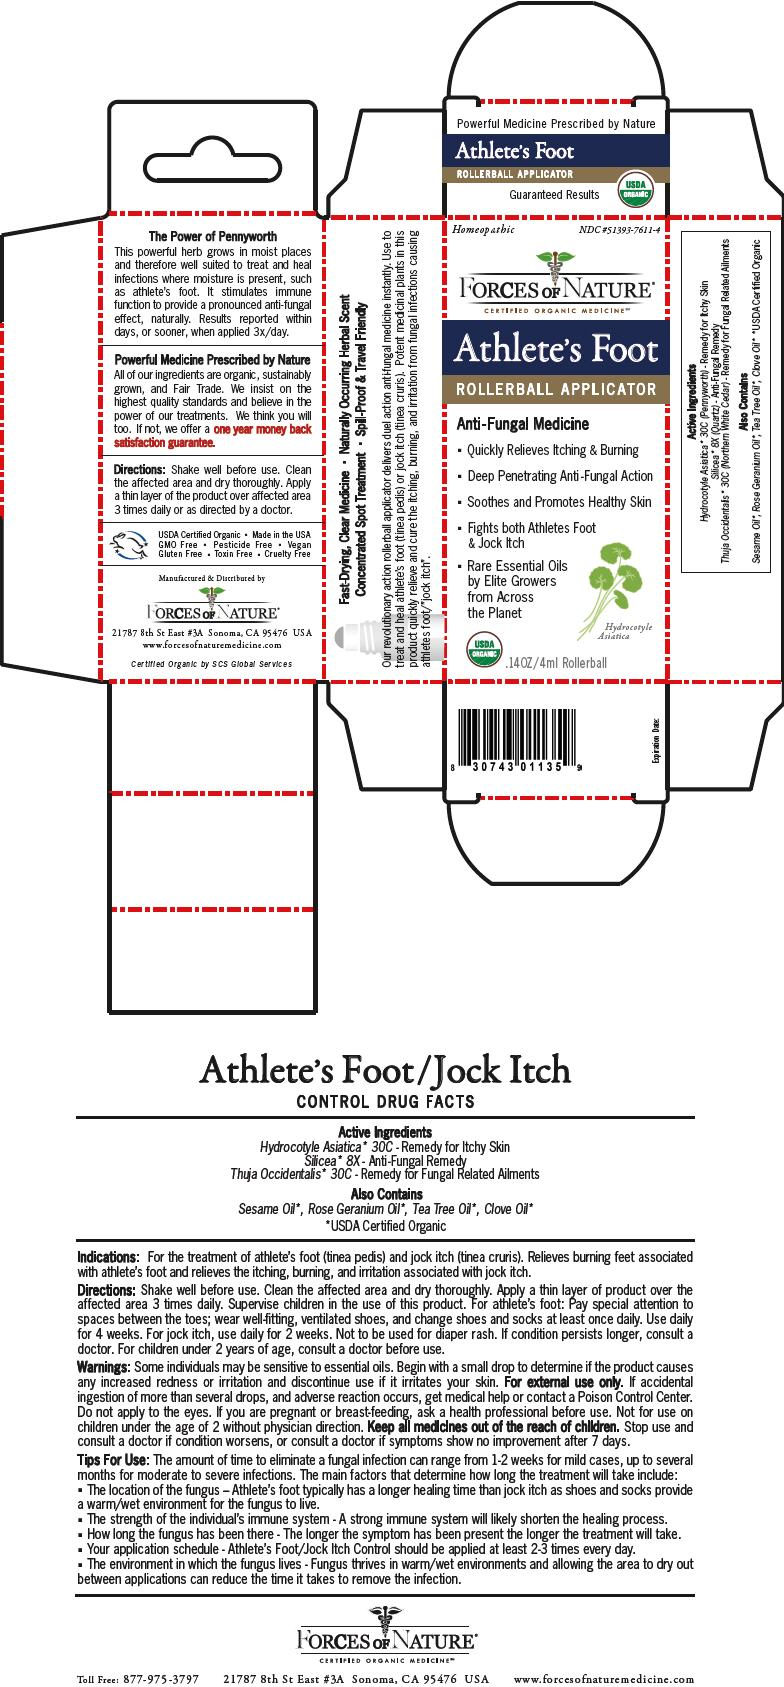 Athletes Foot/jock Itch Control (Centella Asiatica, Silicon Dioxide, And Thuja Occidentalis Root) Solution/ Drops [Forces Of Nature]